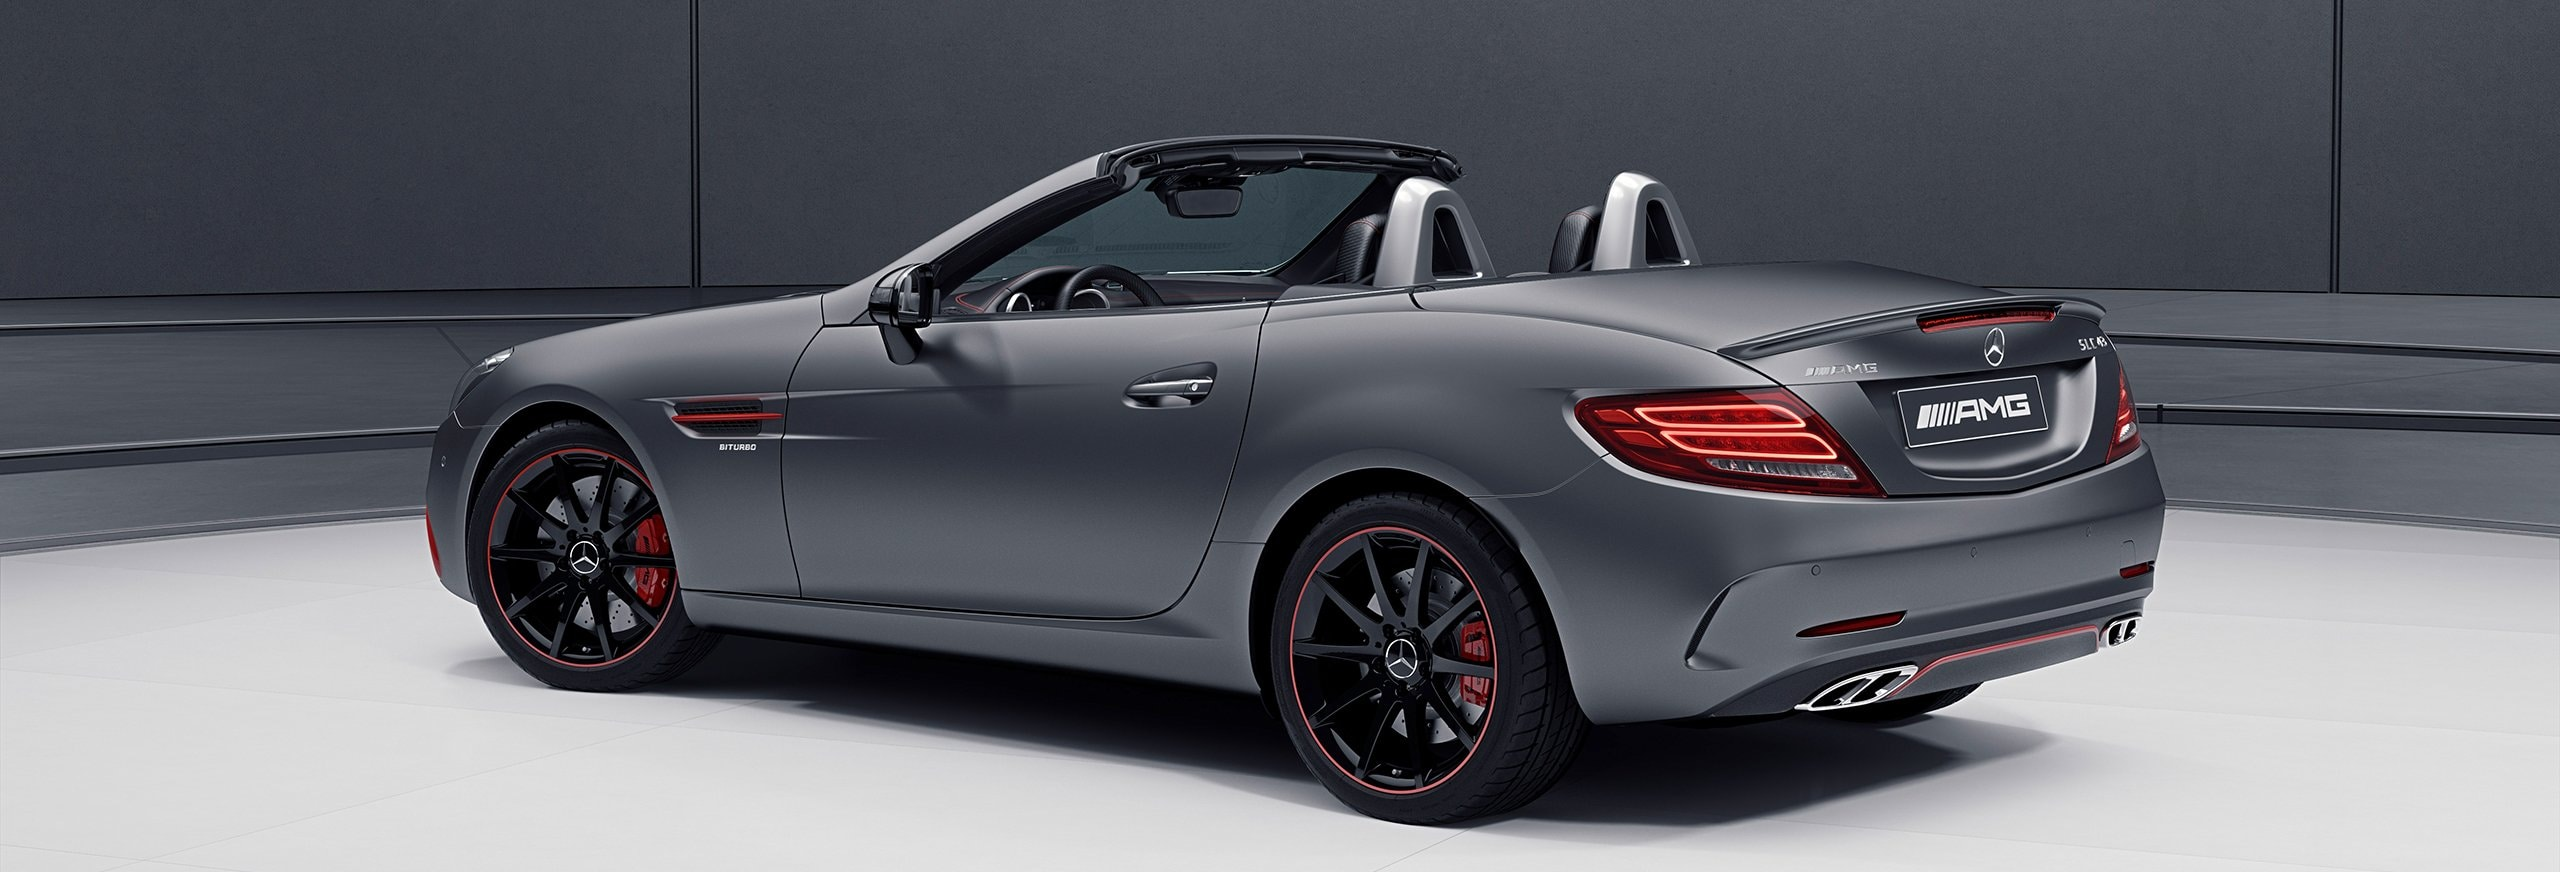 The AMG RedArt Edition for the Mercedes-AMG SLC 43 provides expressive highlights with stylishly placed red elements.